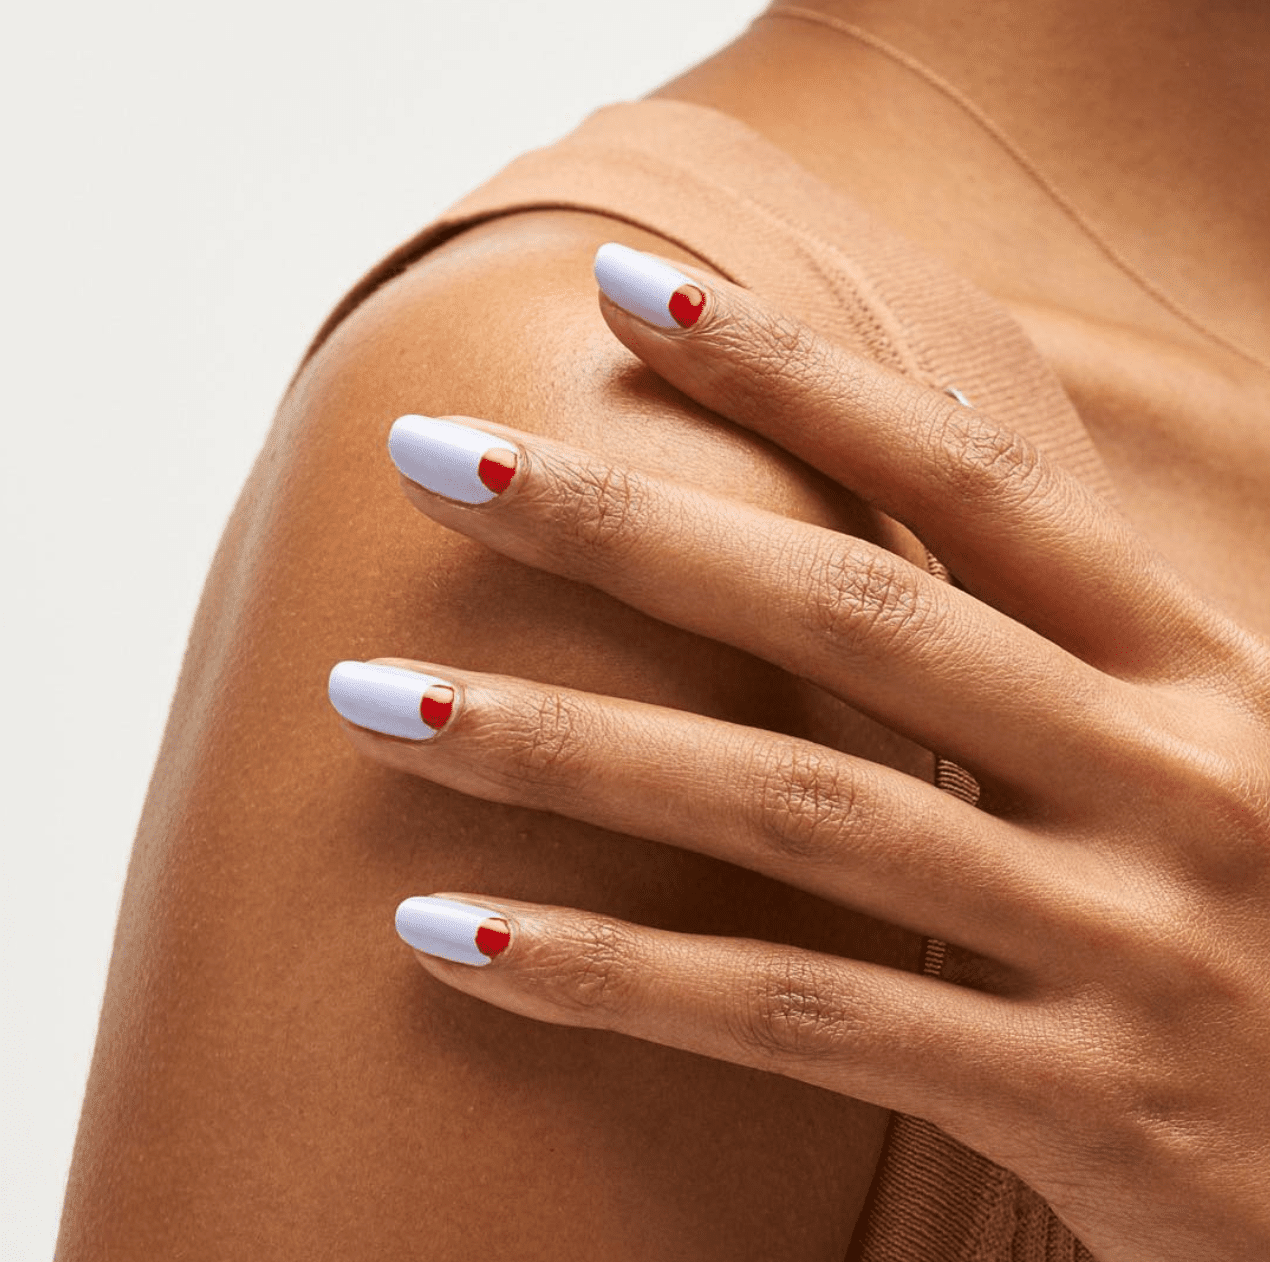 This Is the Nail Color You Should Wear In April